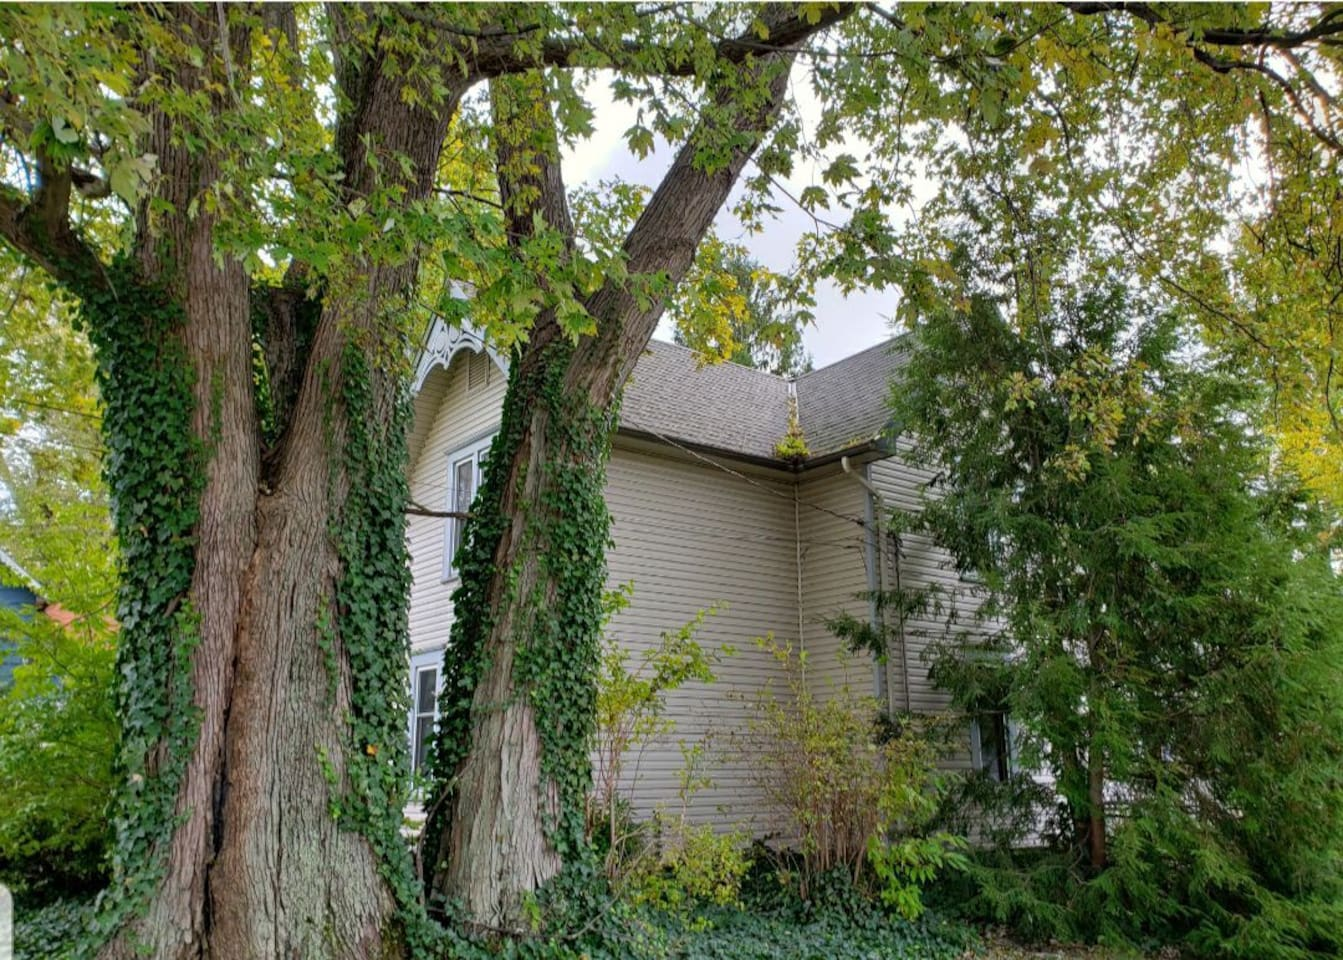 Front side yard. One of the oldest trees on the street.